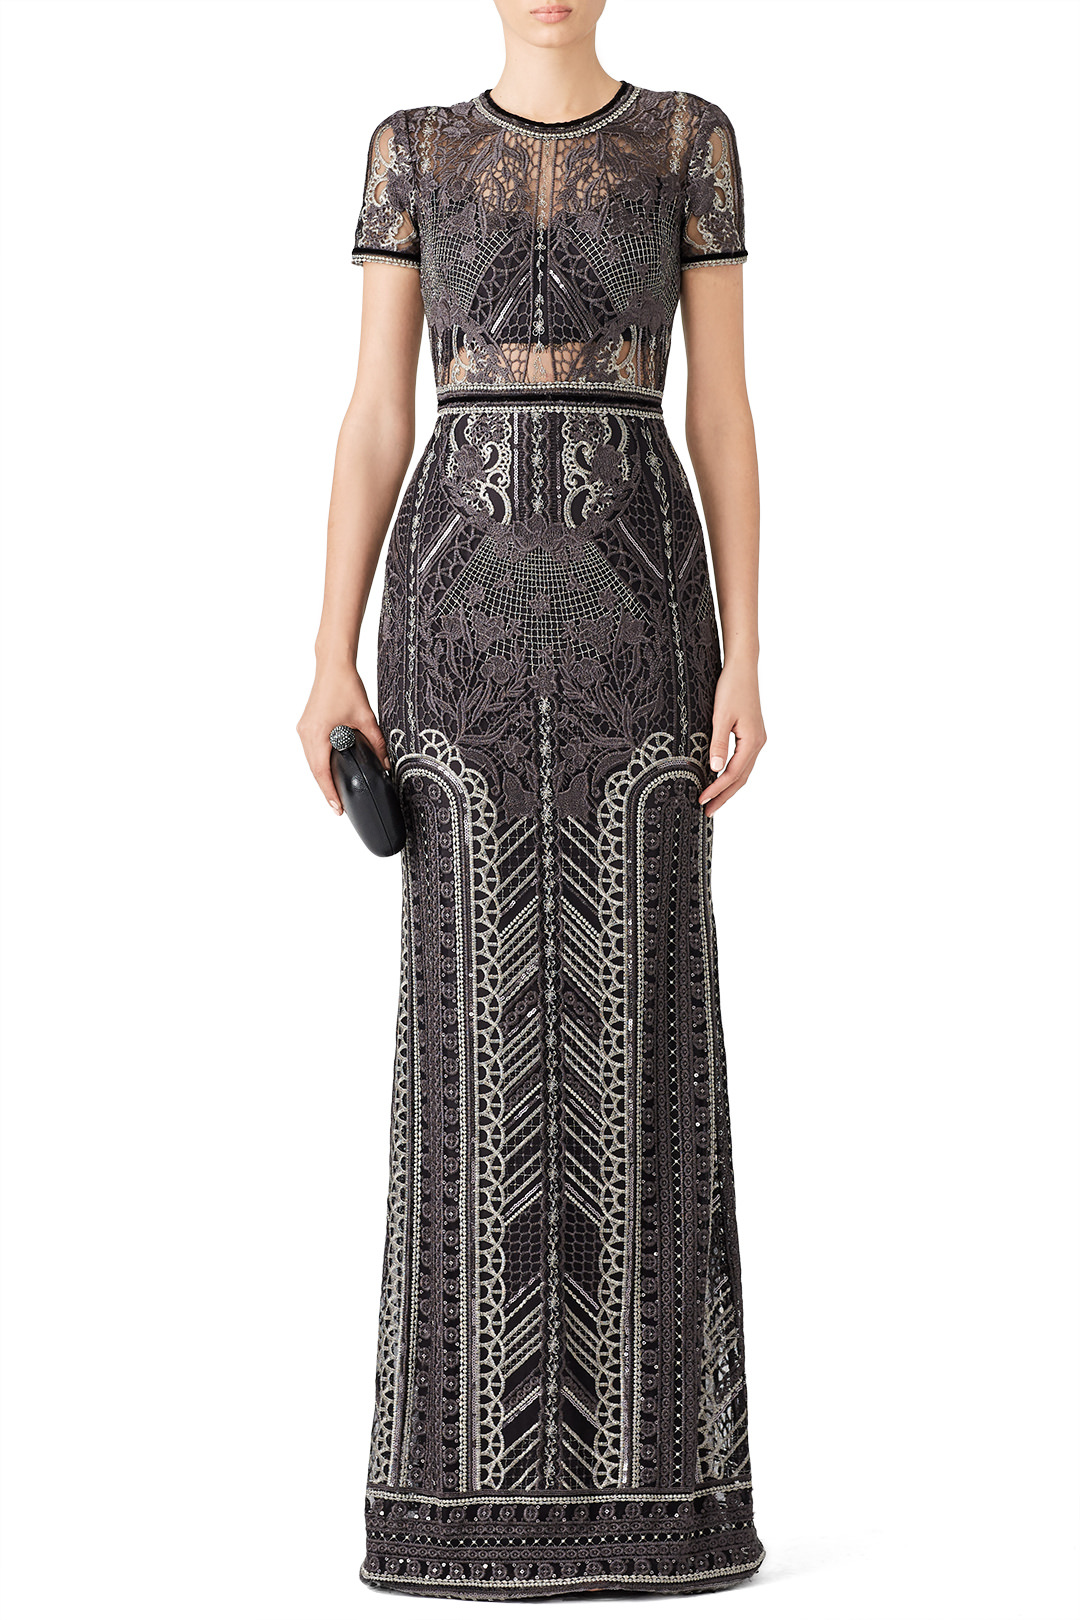 Marchesa Notte Silver Embroidered Gown - I've had my eyes on this gown for a while…but again…no occasion. SOMEONE INVITE ME SOMEWHERE FANCY!!!!!!!